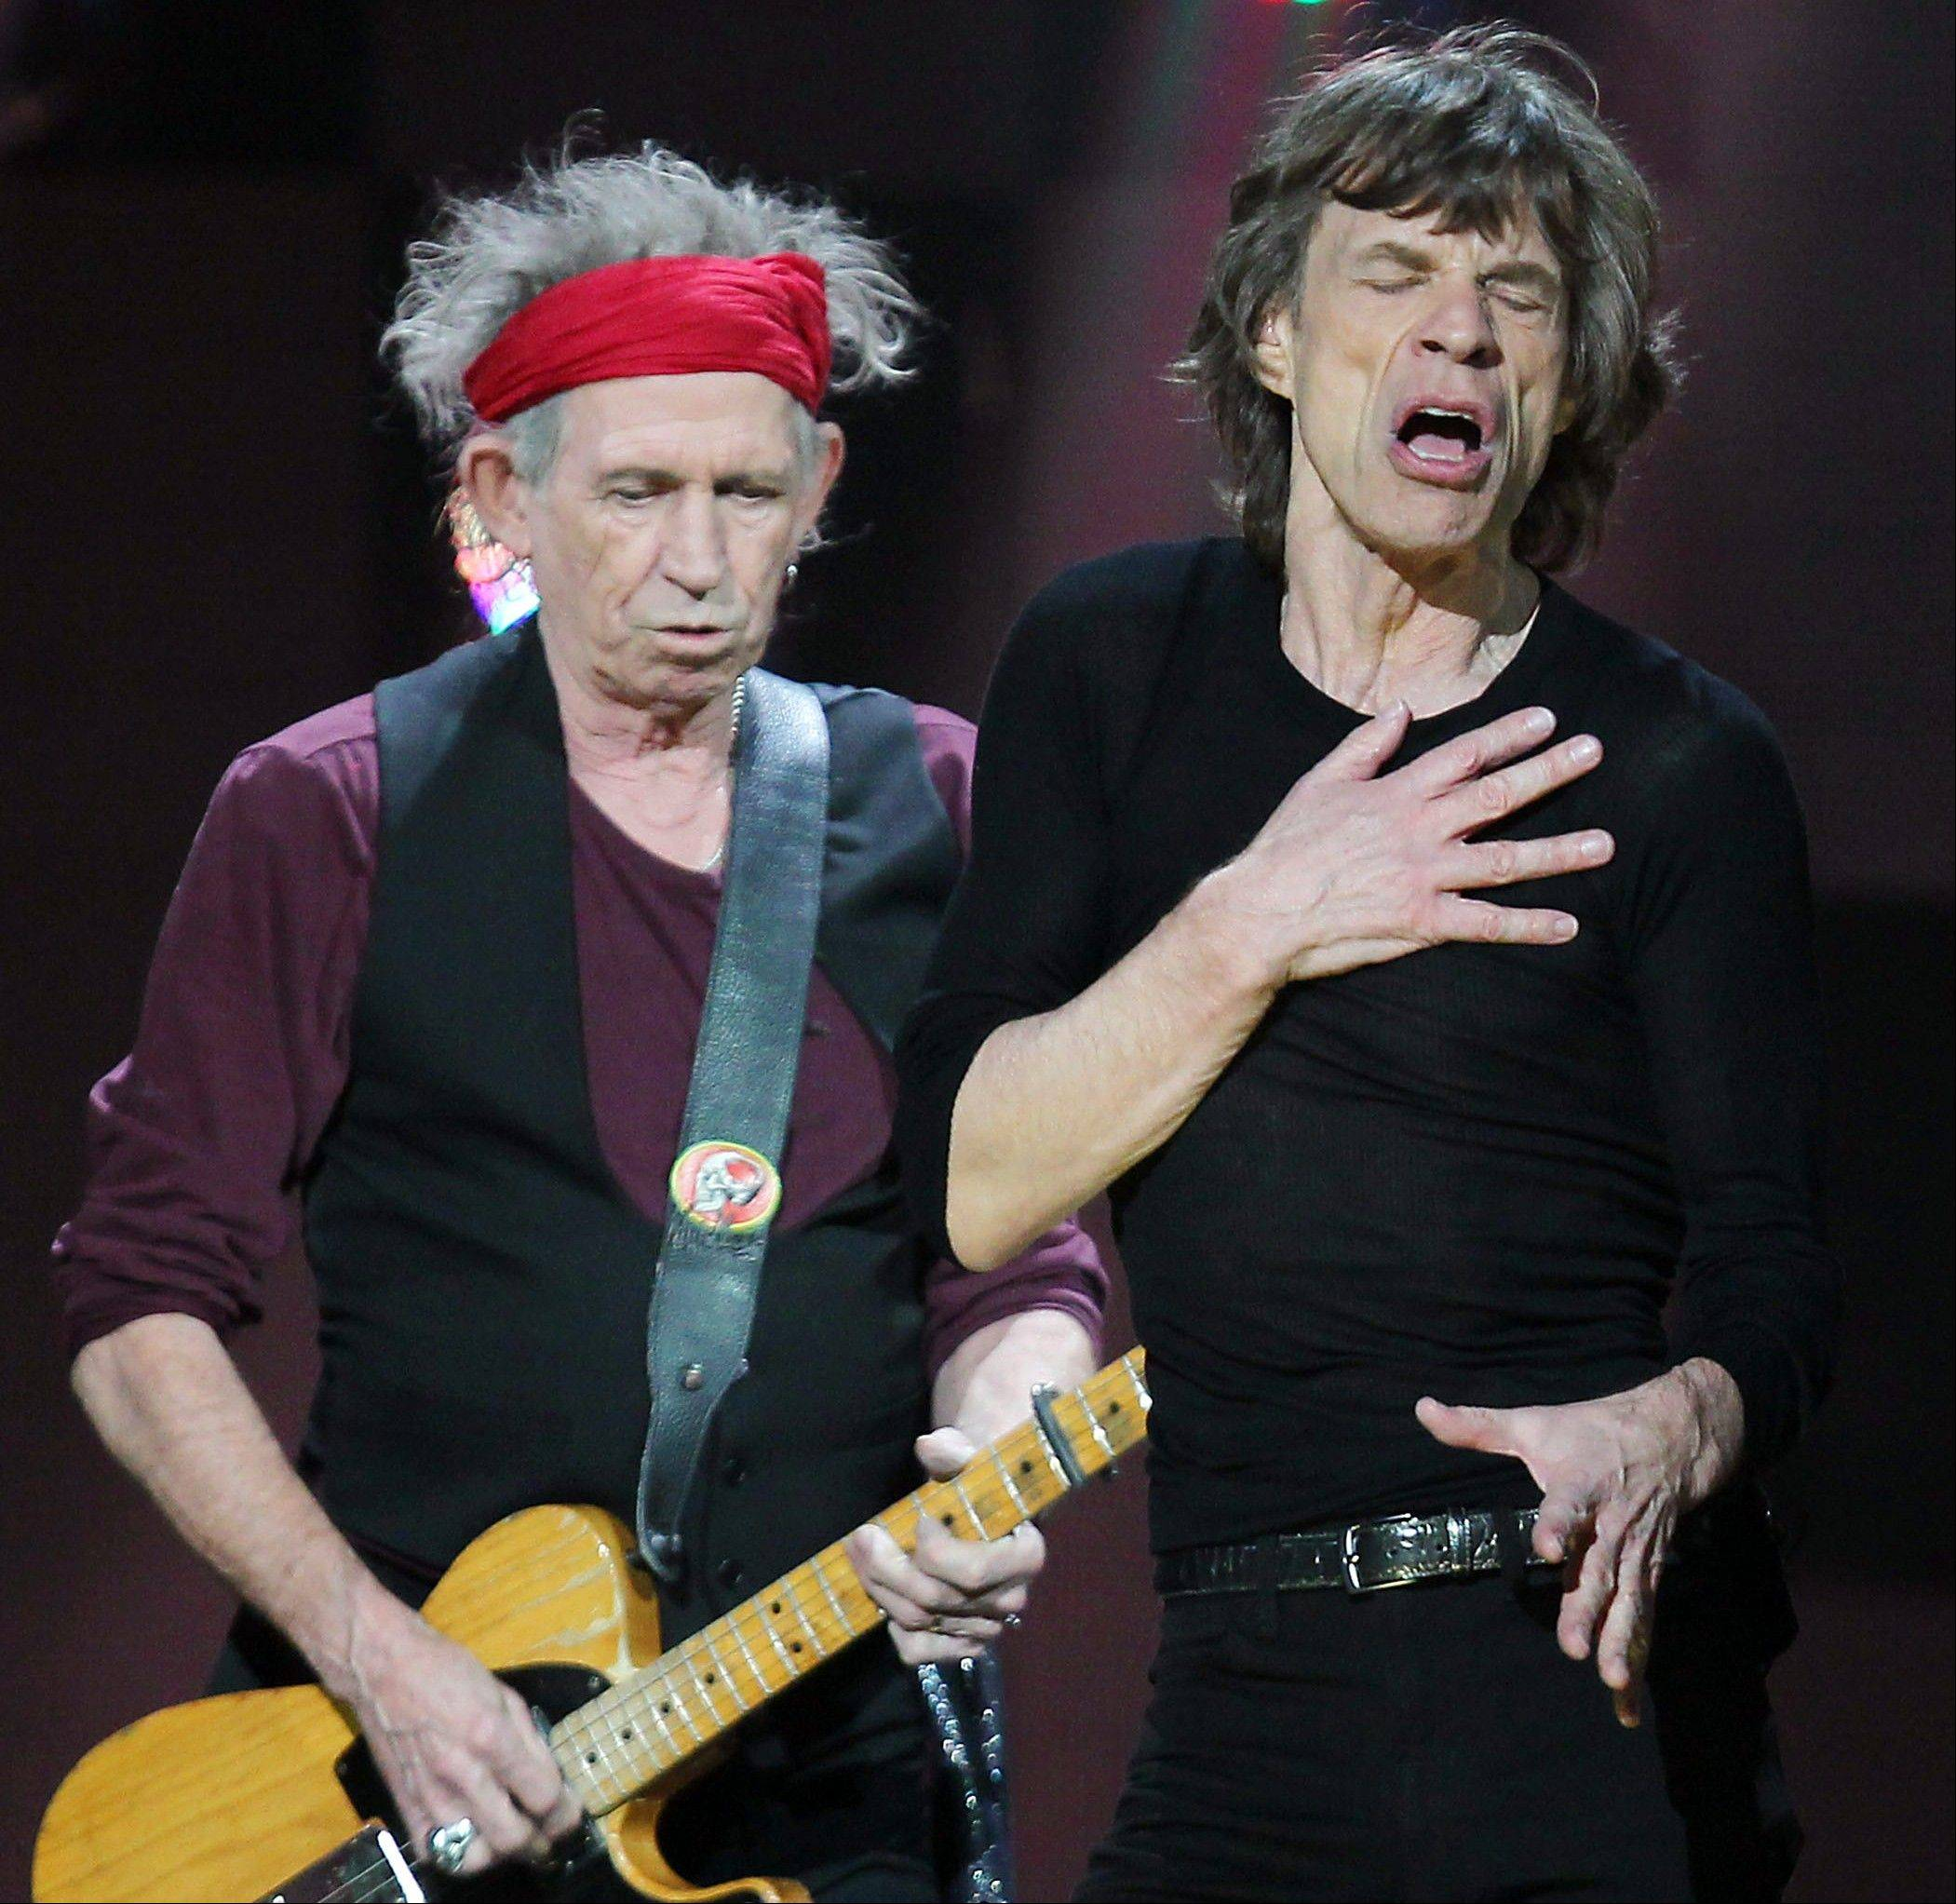 Keith Richards, left, and Mick Jagger of The Rolling Stones are expected to announce details of a new tour Wednesday.